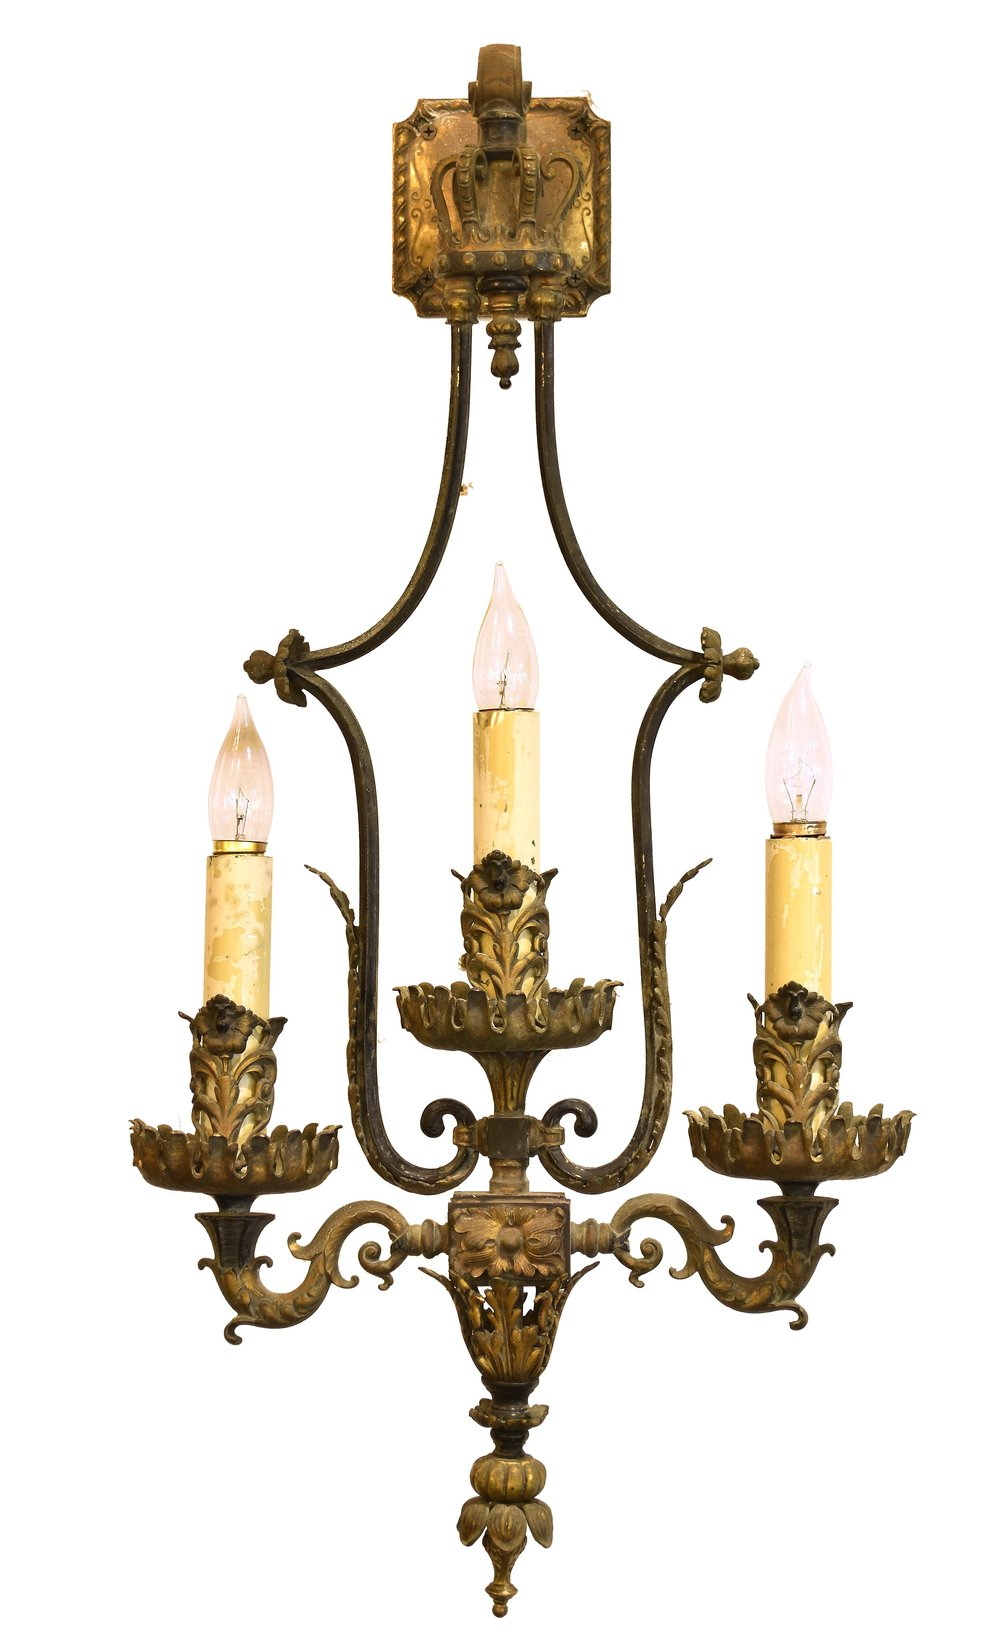 47472 large hanging three candle sconce.jpg